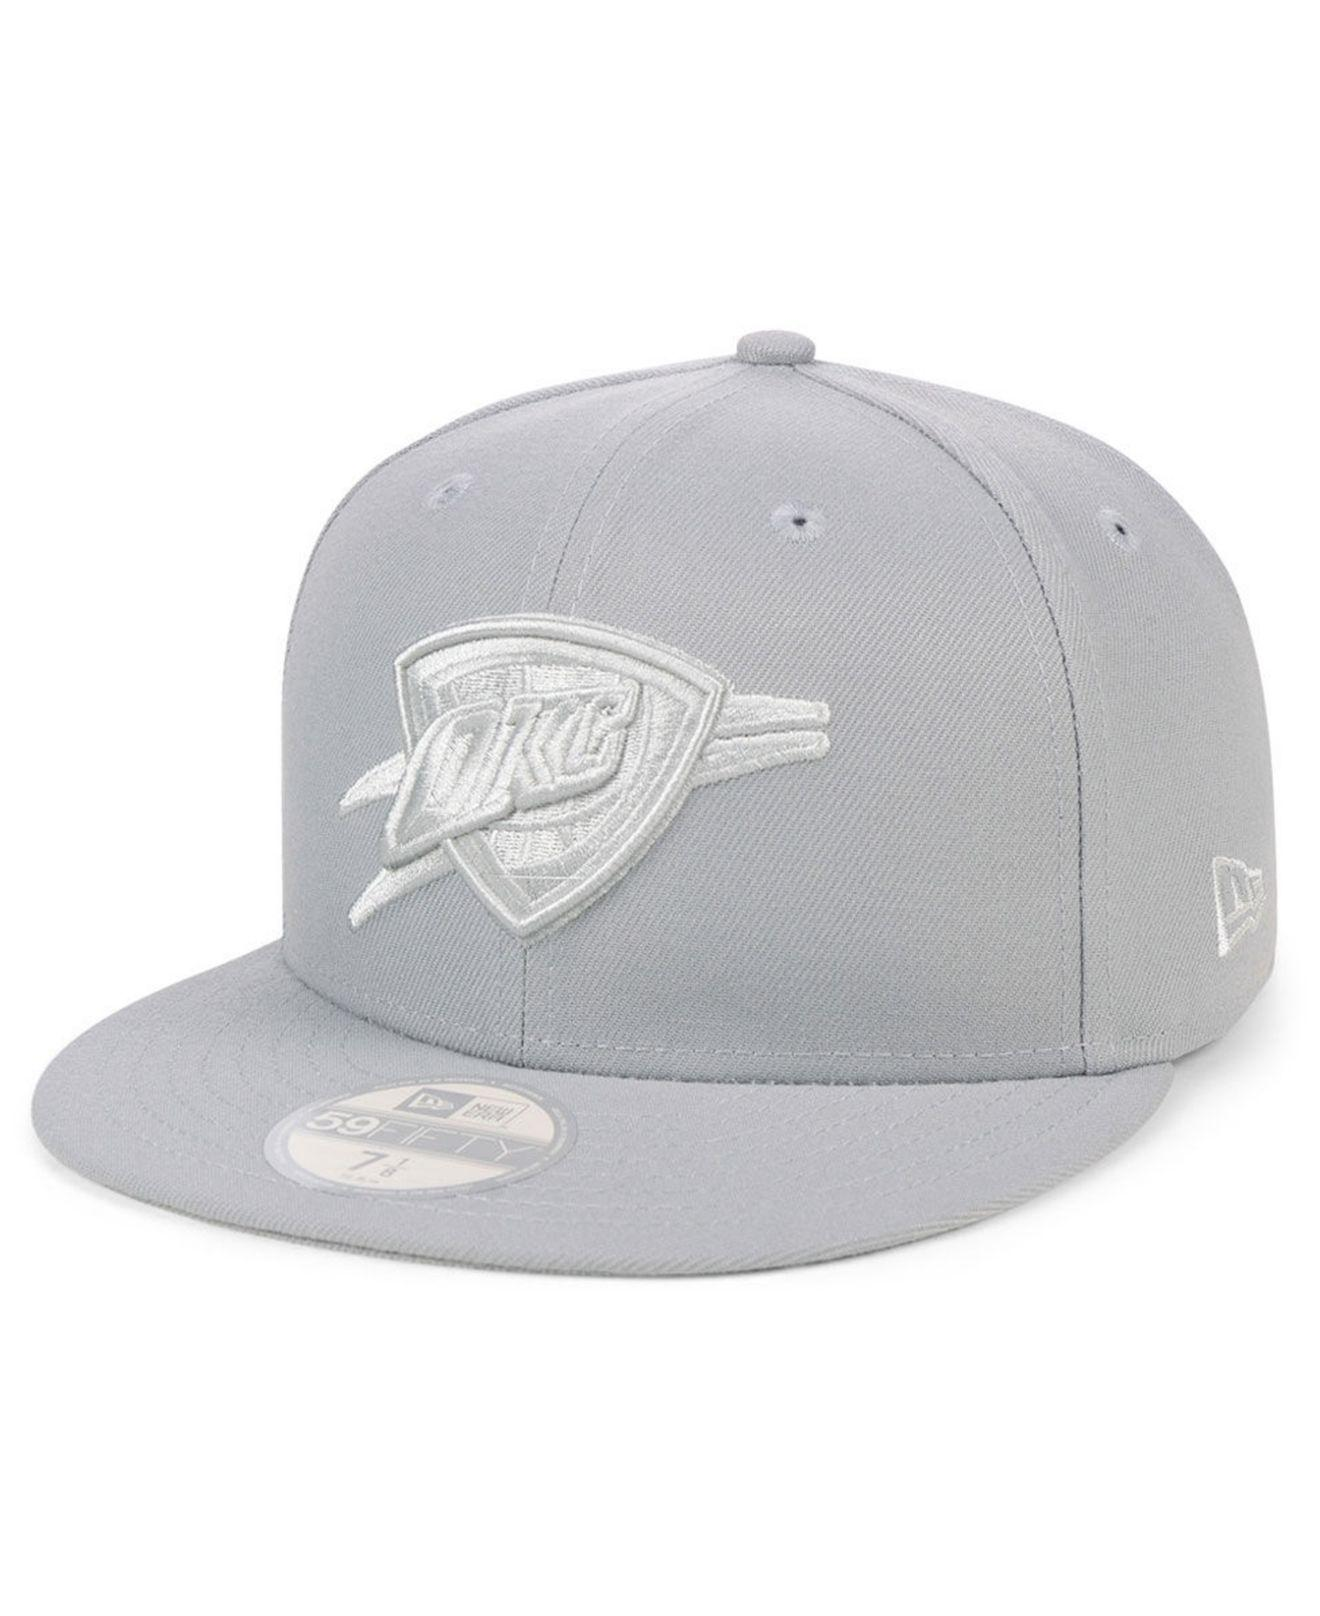 outlet store 233cd 222e7 ... adjustable e4702 e5679  sale ktz. mens gray oklahoma city thunder fall  prism pack 59fifty fitted cap 0384e 626a7